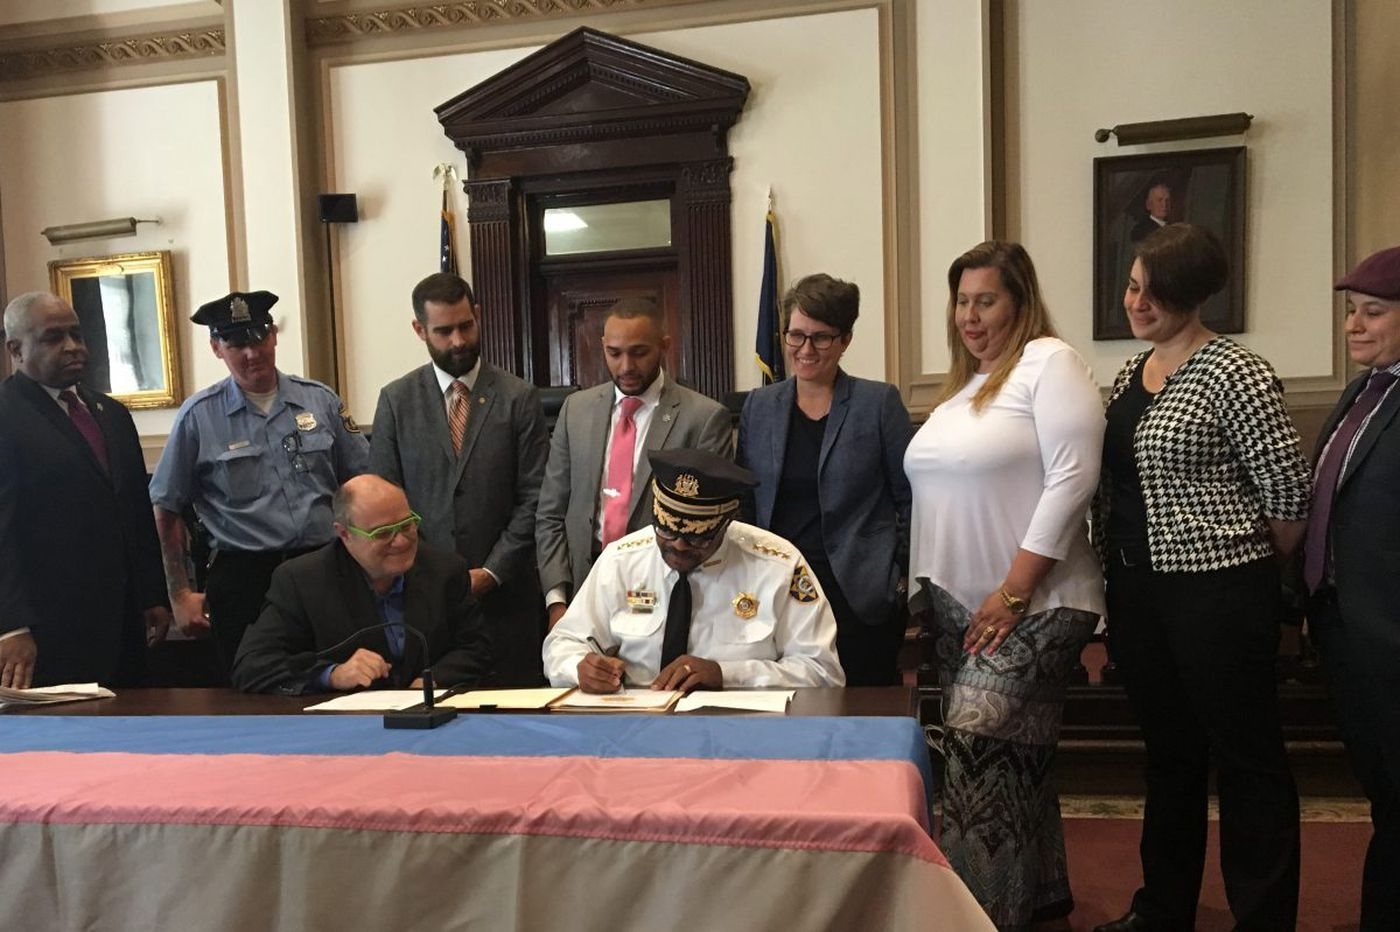 Guidelines for treating transgender people issued by Philly sheriff